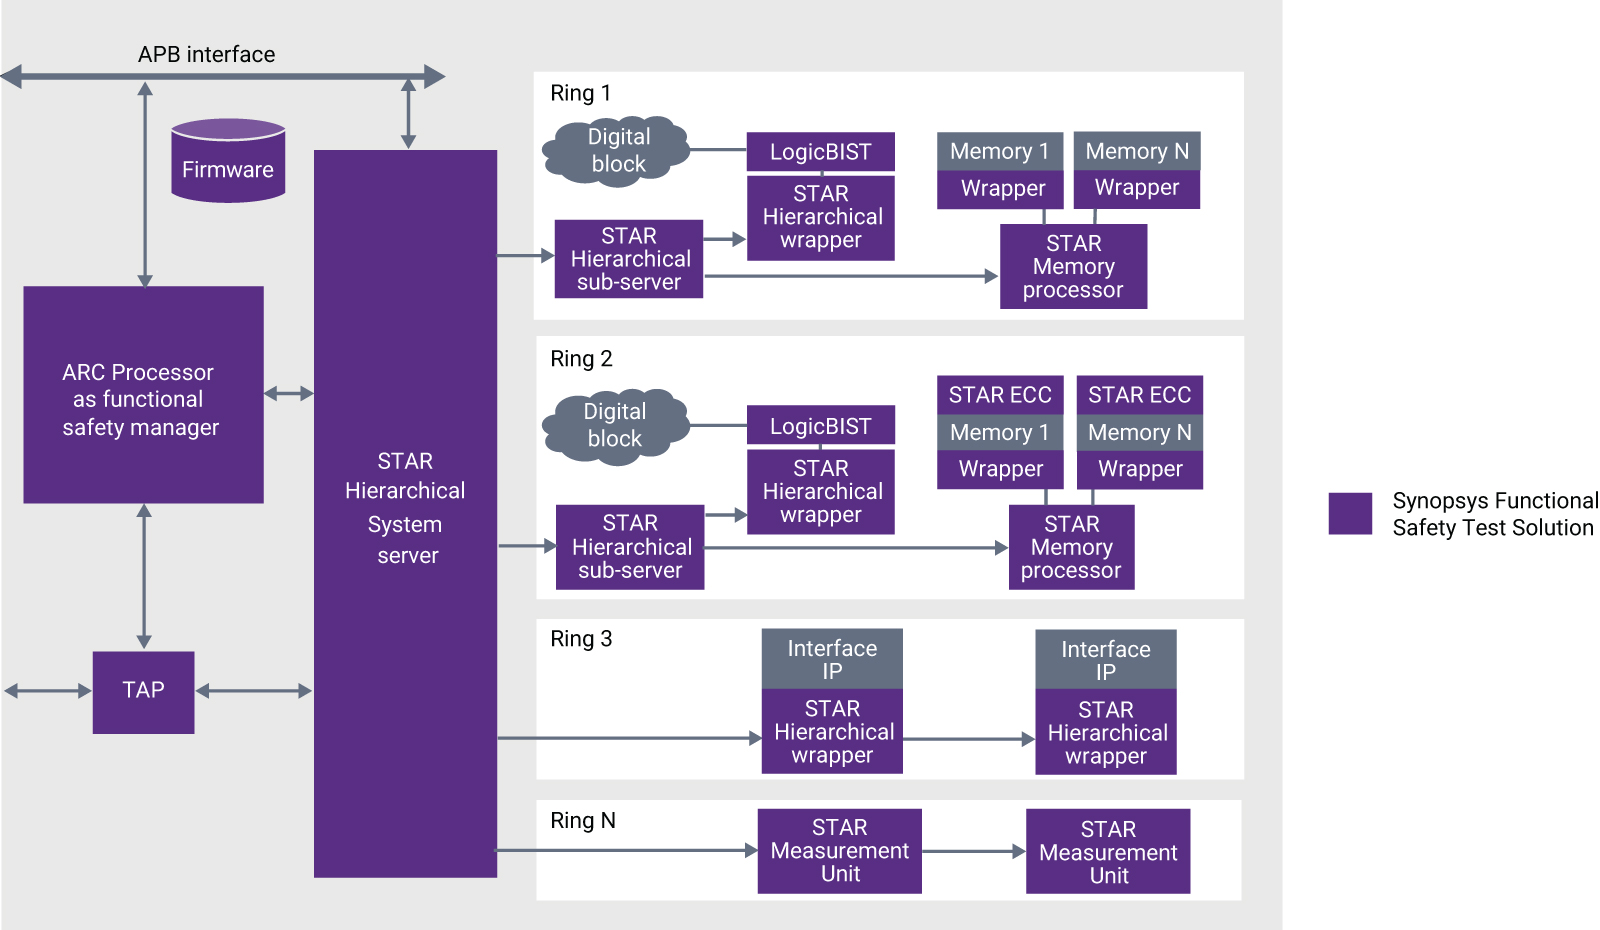 Figure 1: Synopsys Functional Safety Test Solution